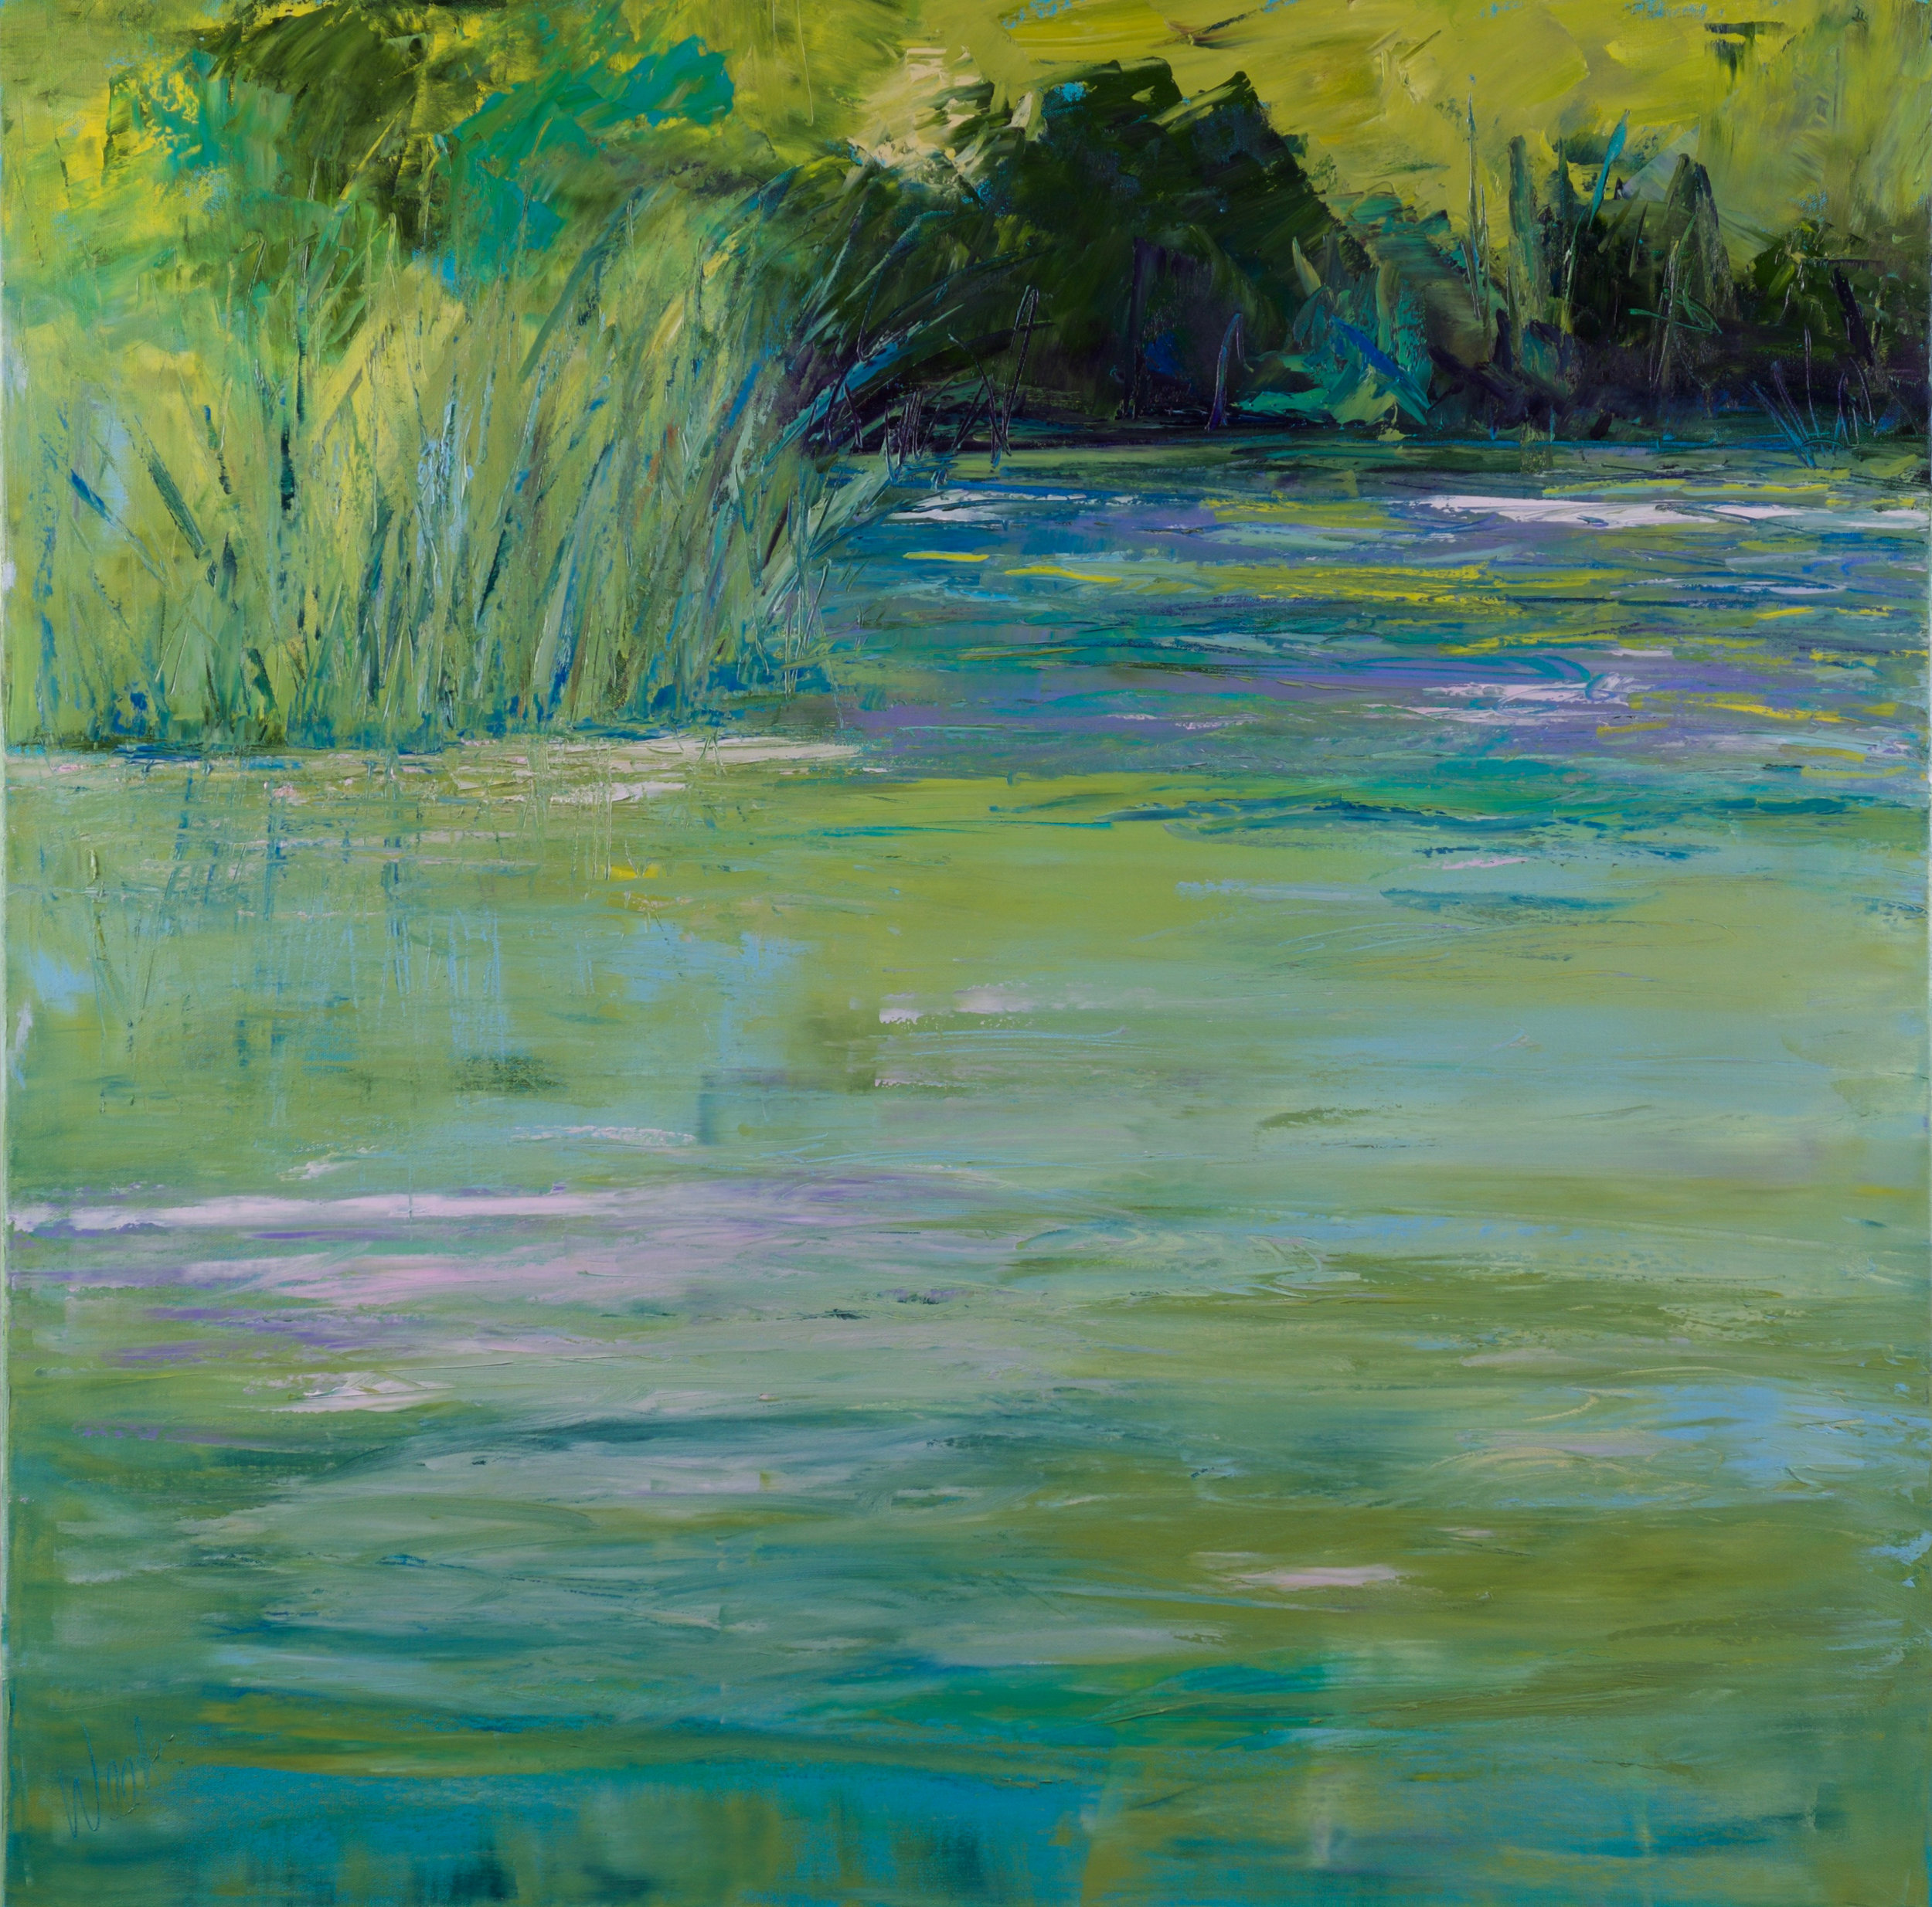 """A Visit to Monet's Pond"" - 36 x 36 inch"